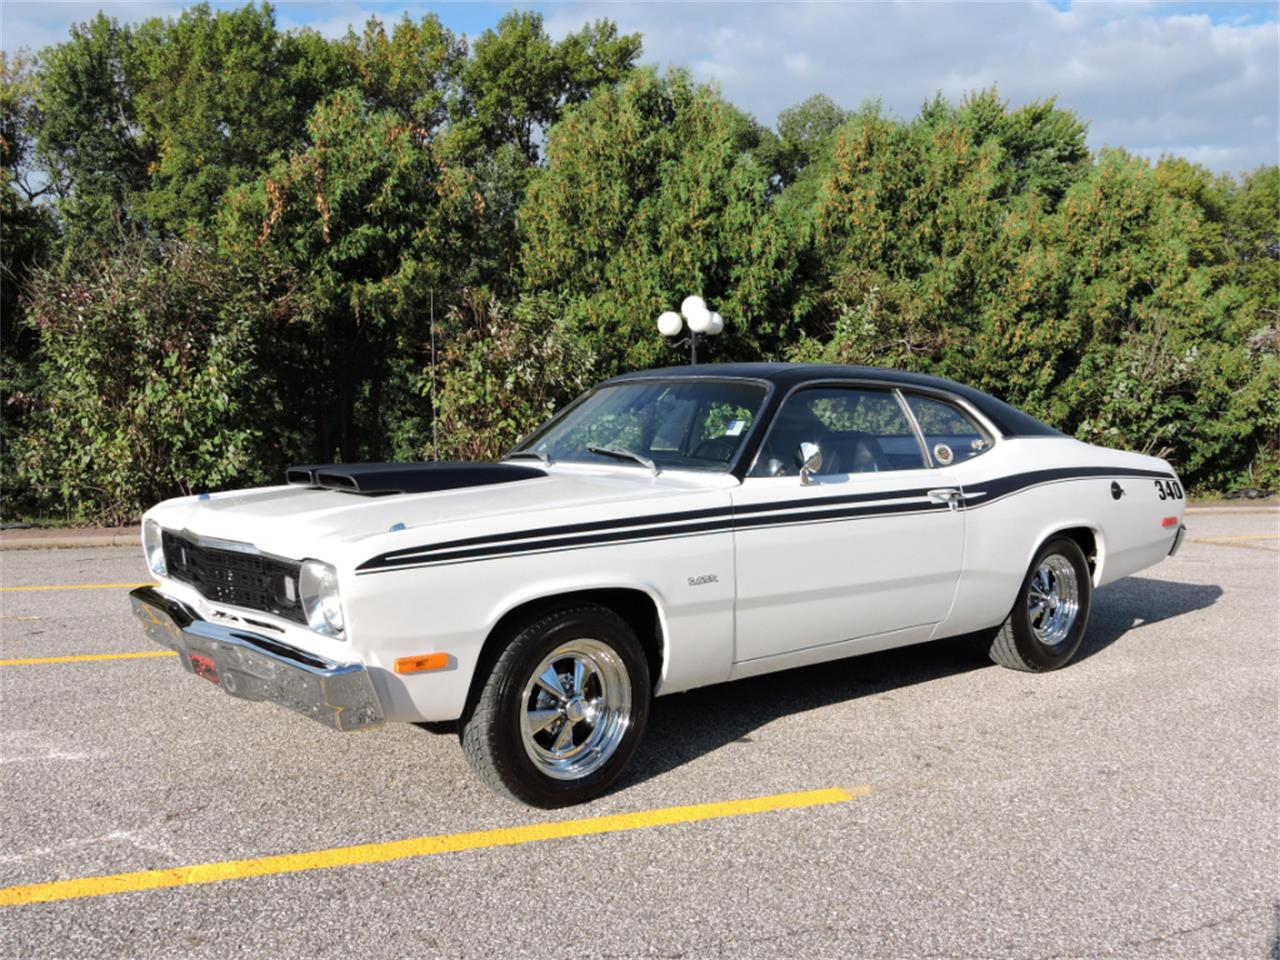 1973 Plymouth Duster for sale in Greene, IA – photo 2